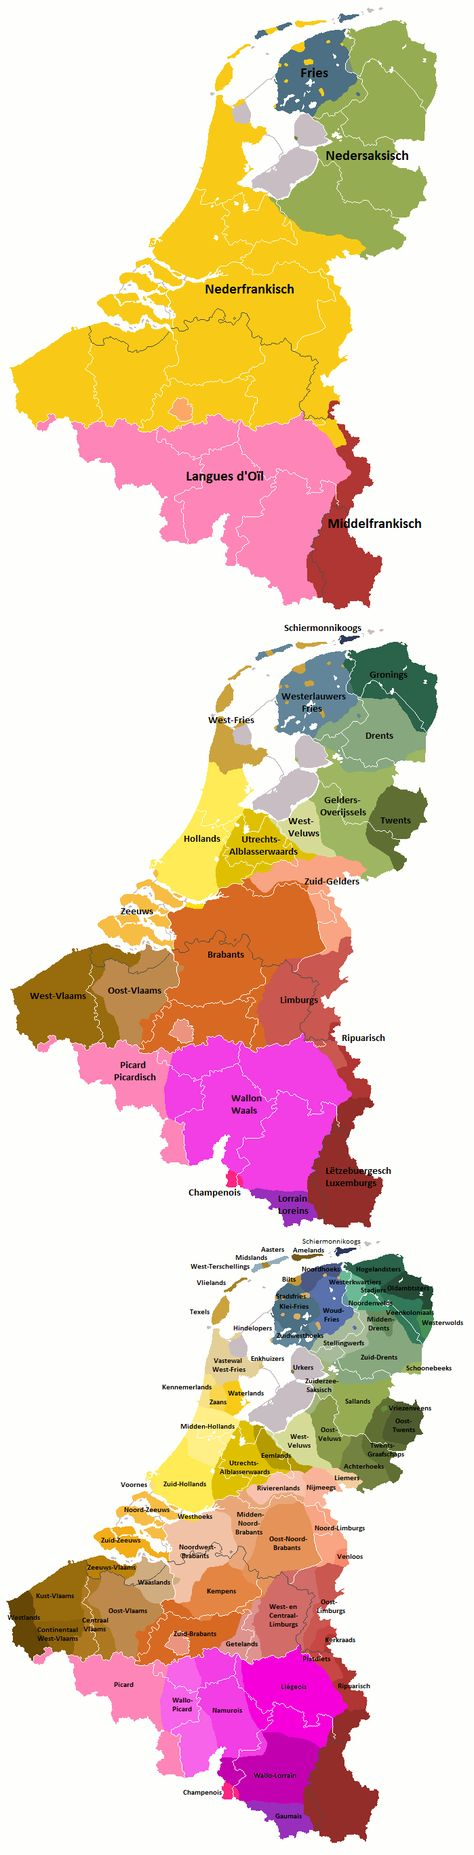 Netherlands Map Of Country%0A Languages of Netherlands  Belgium and Luxembourg  Benelux    Maps    Pinterest   Language  Luxembourg and Belgium